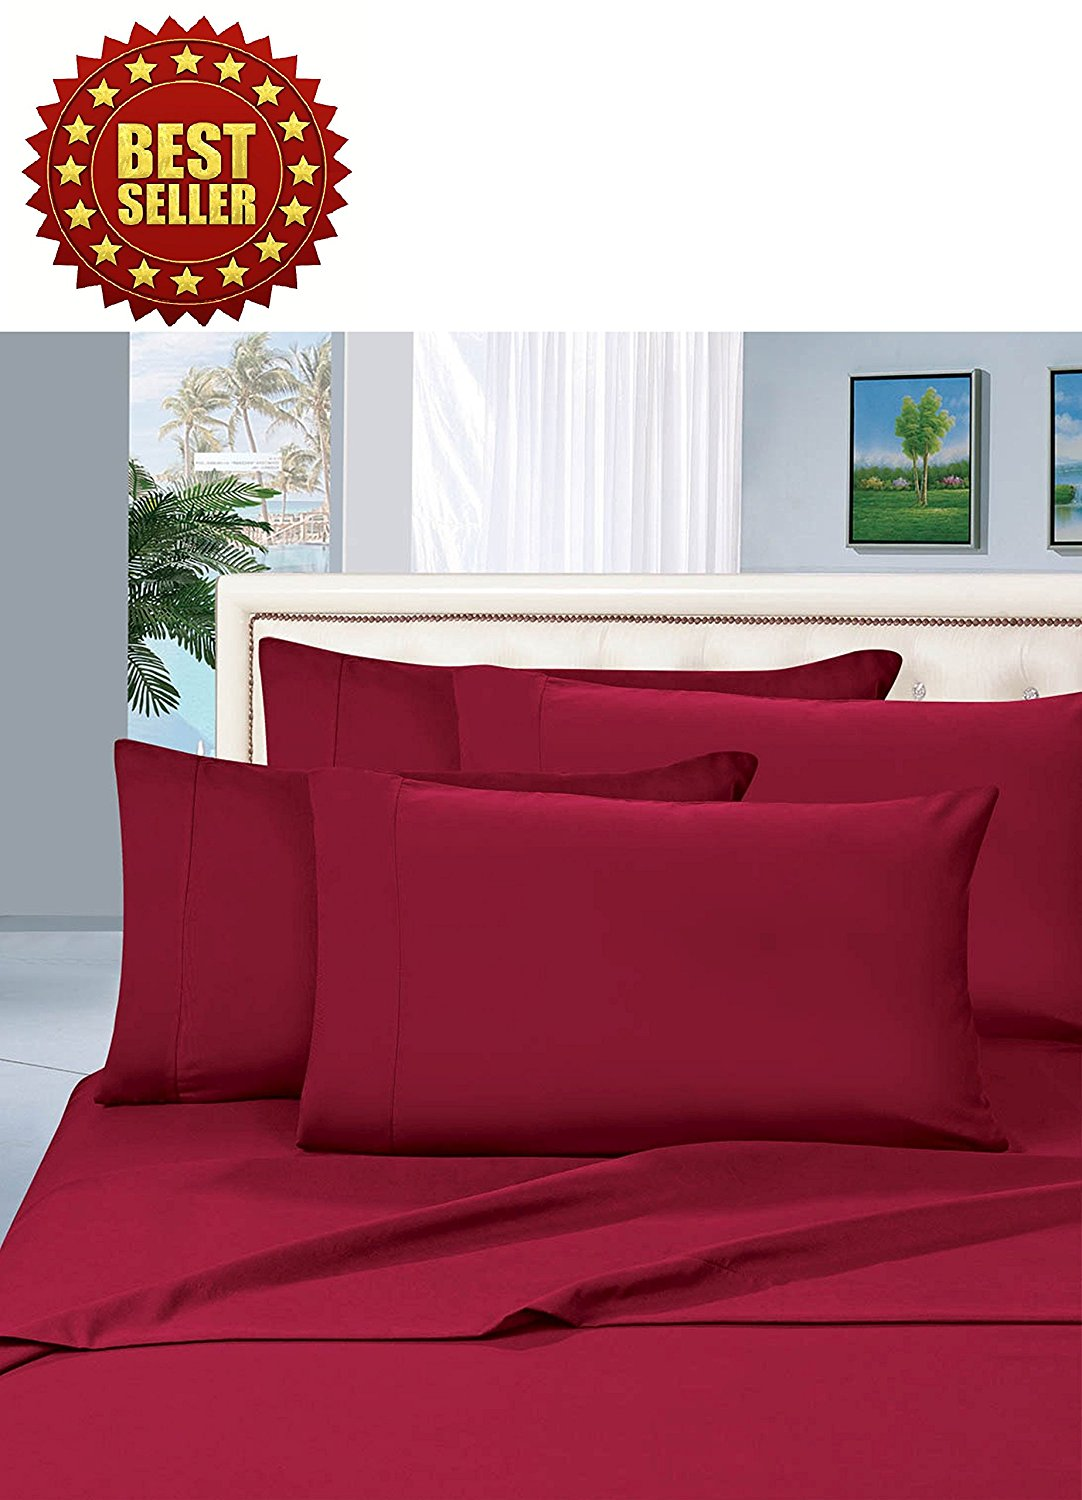 celine linen wrinkle and fade resistant highest quality series luxurious 4piece bed sheet